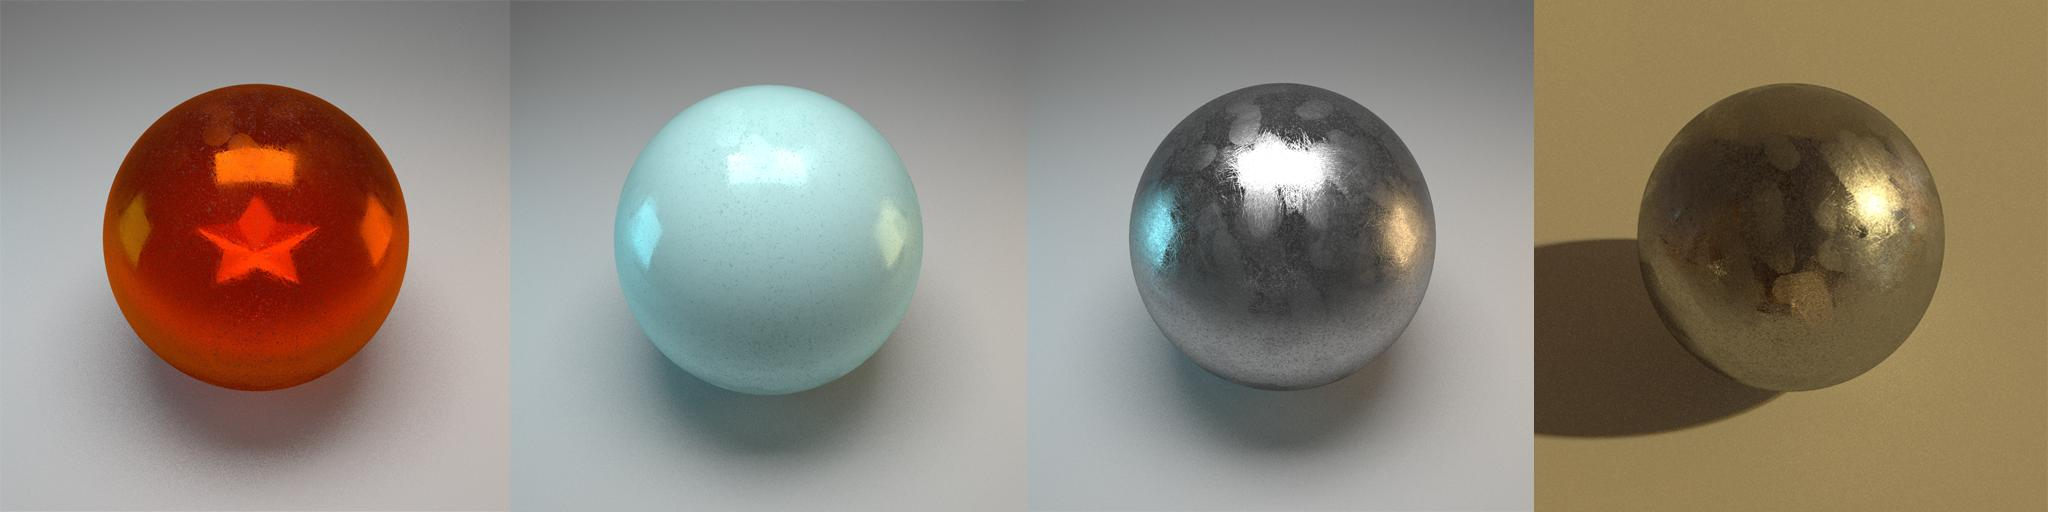 how to make realistic looking objects in blender